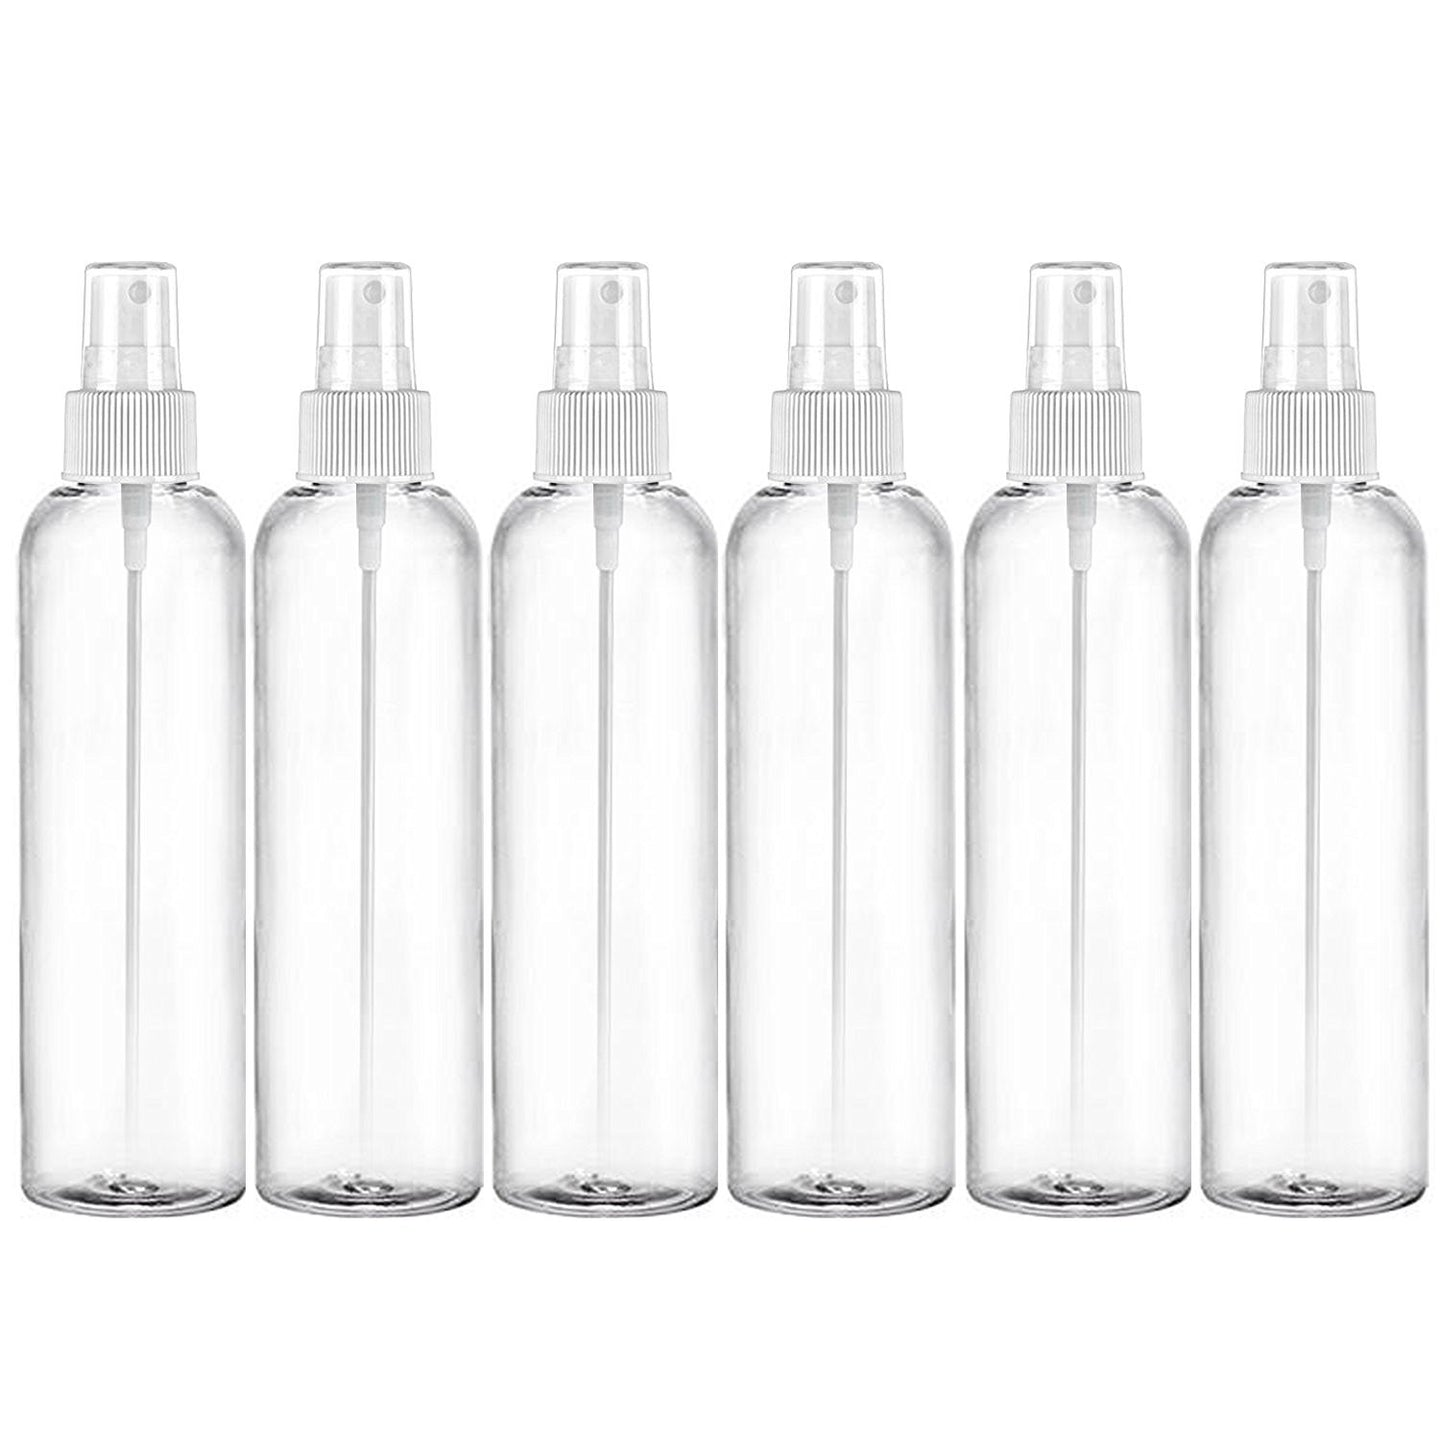 MoYo Natural Labs 8 oz Spray Bottles, Fine Mist Empty Travel Containers, BPA Free PET Plastic for Essential Oils and Liquids/Cosmetics (6 pack, Clear)